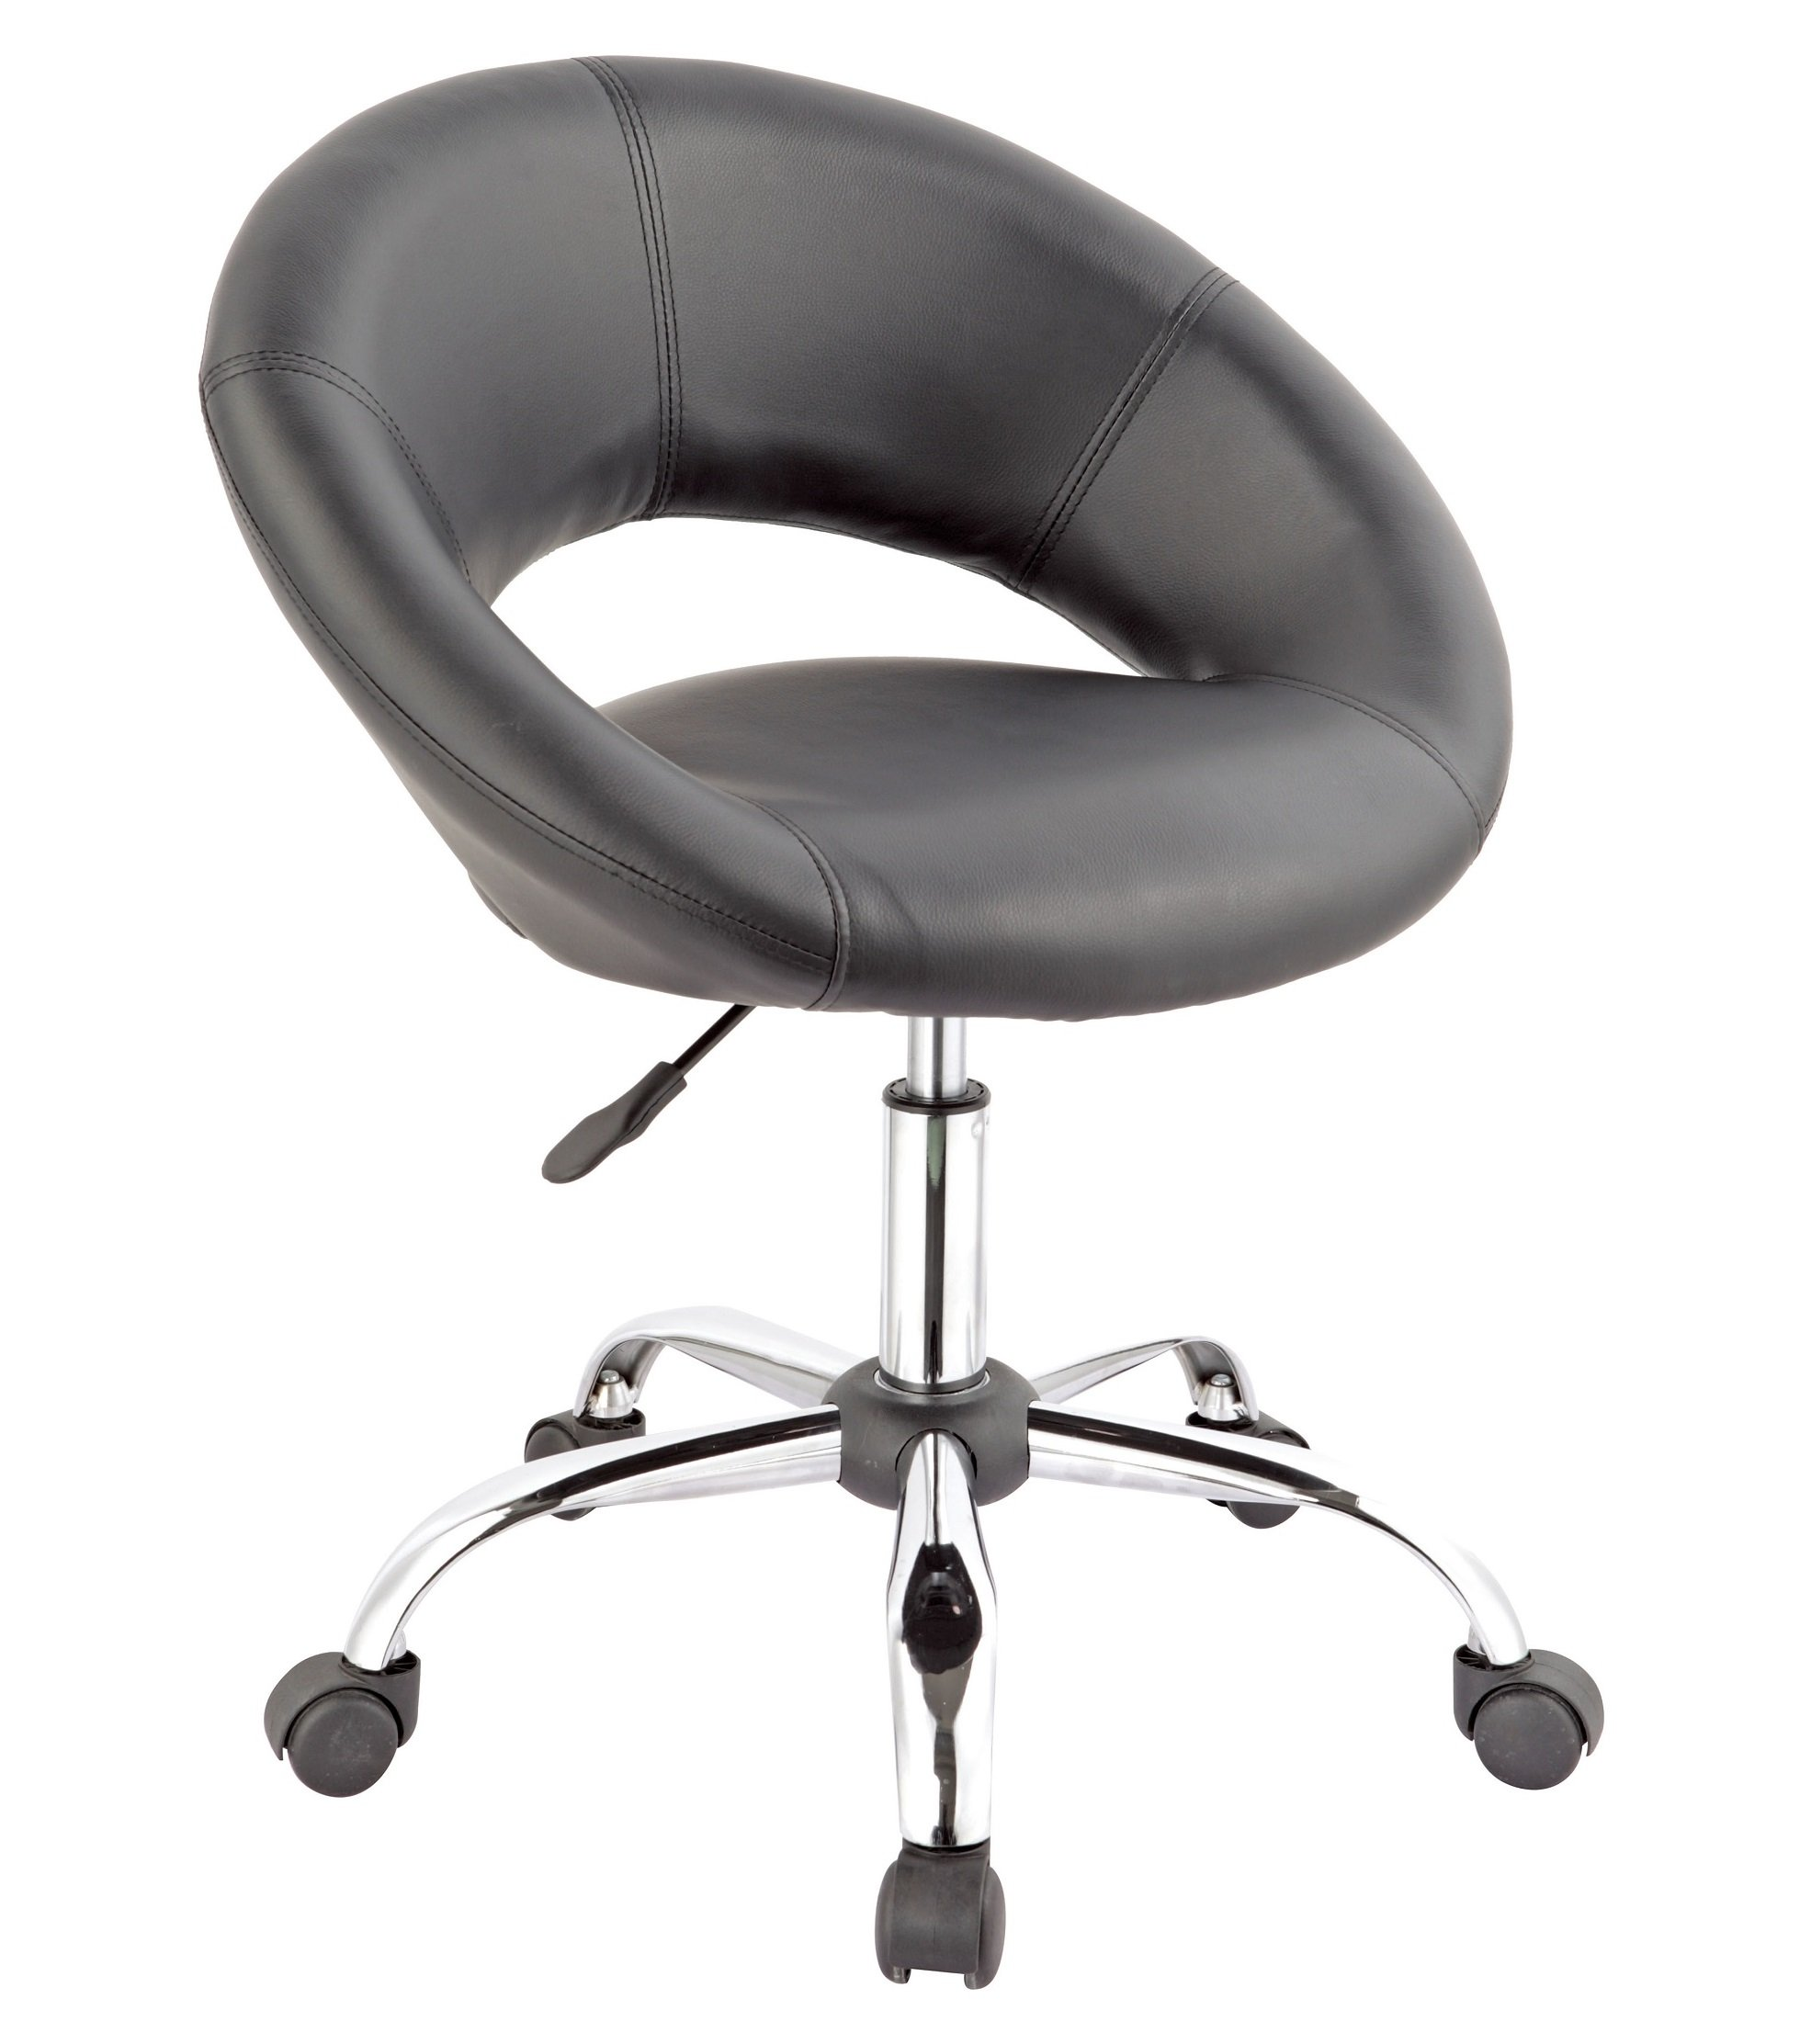 Duhome Working Stool Home Office Chair Task Computer Chair with Wheels Swivel Height Adjustable (Black)